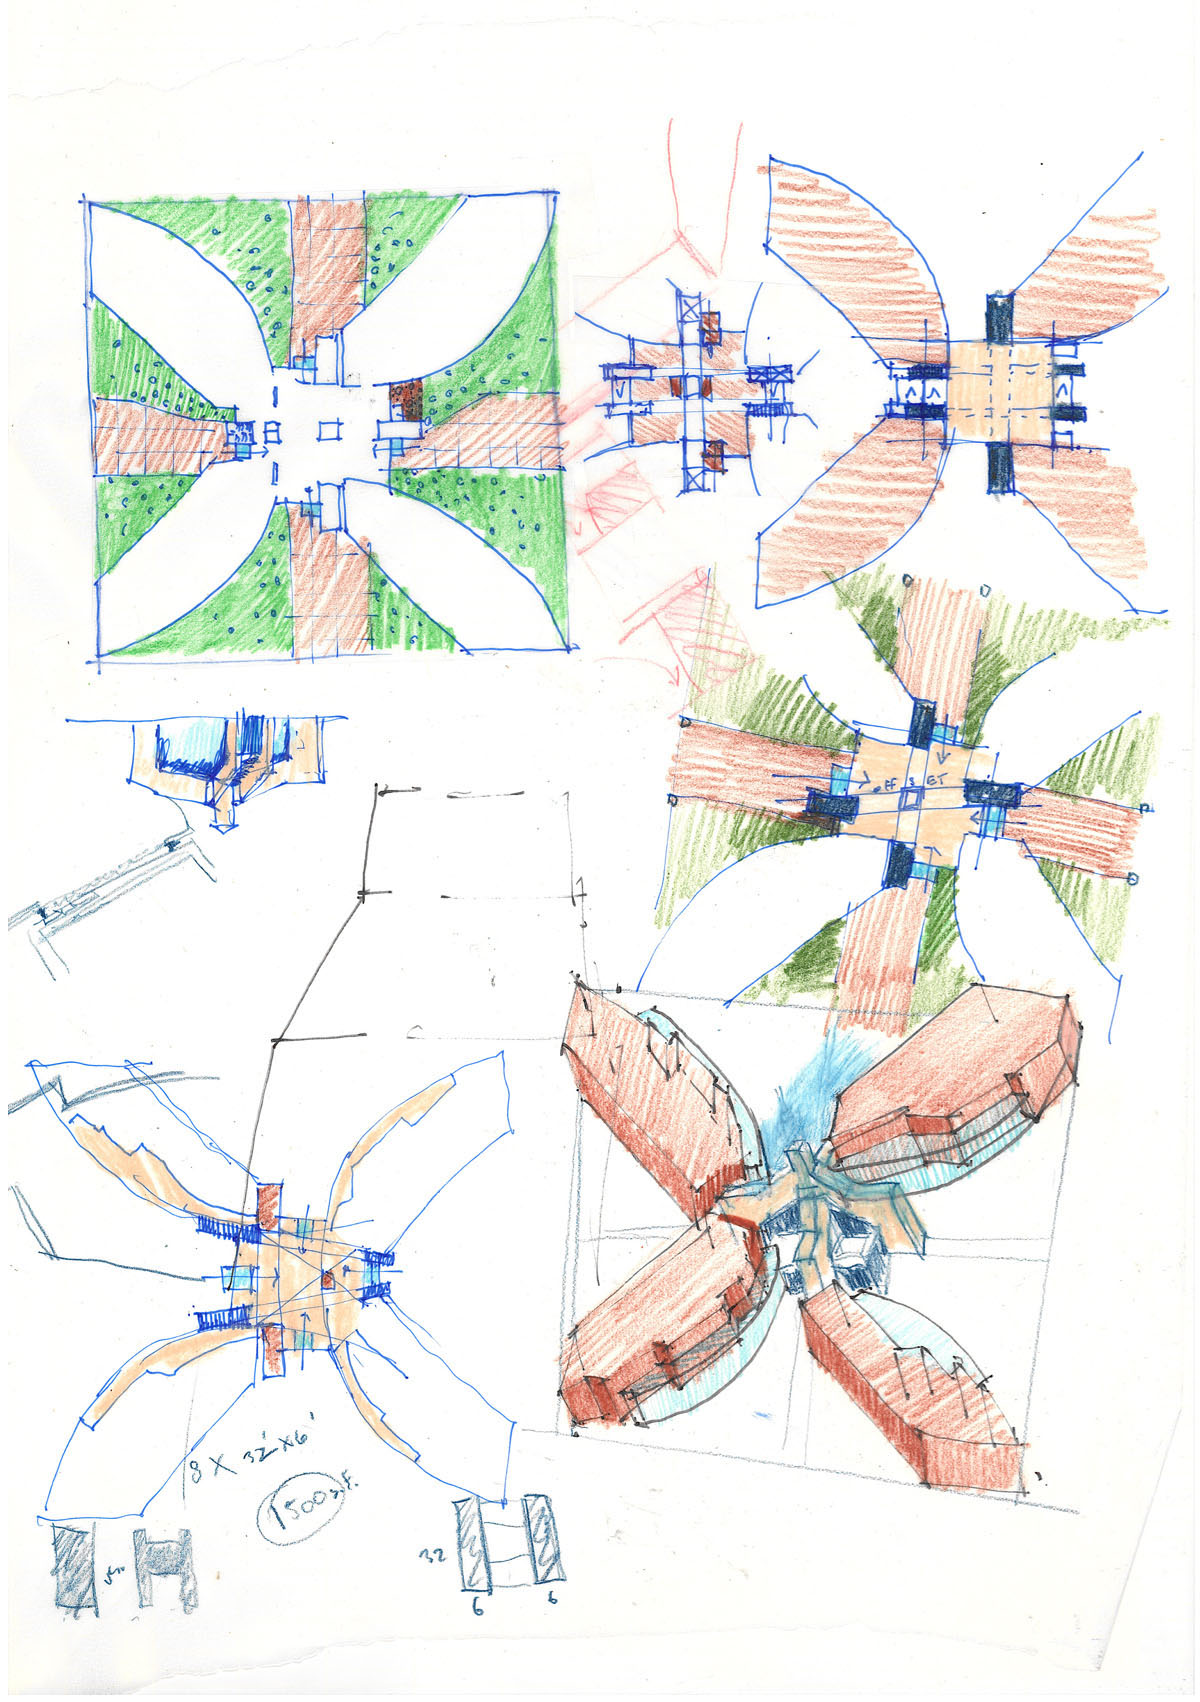 Collage of sketches showing the X configuration for the campus starter concept.